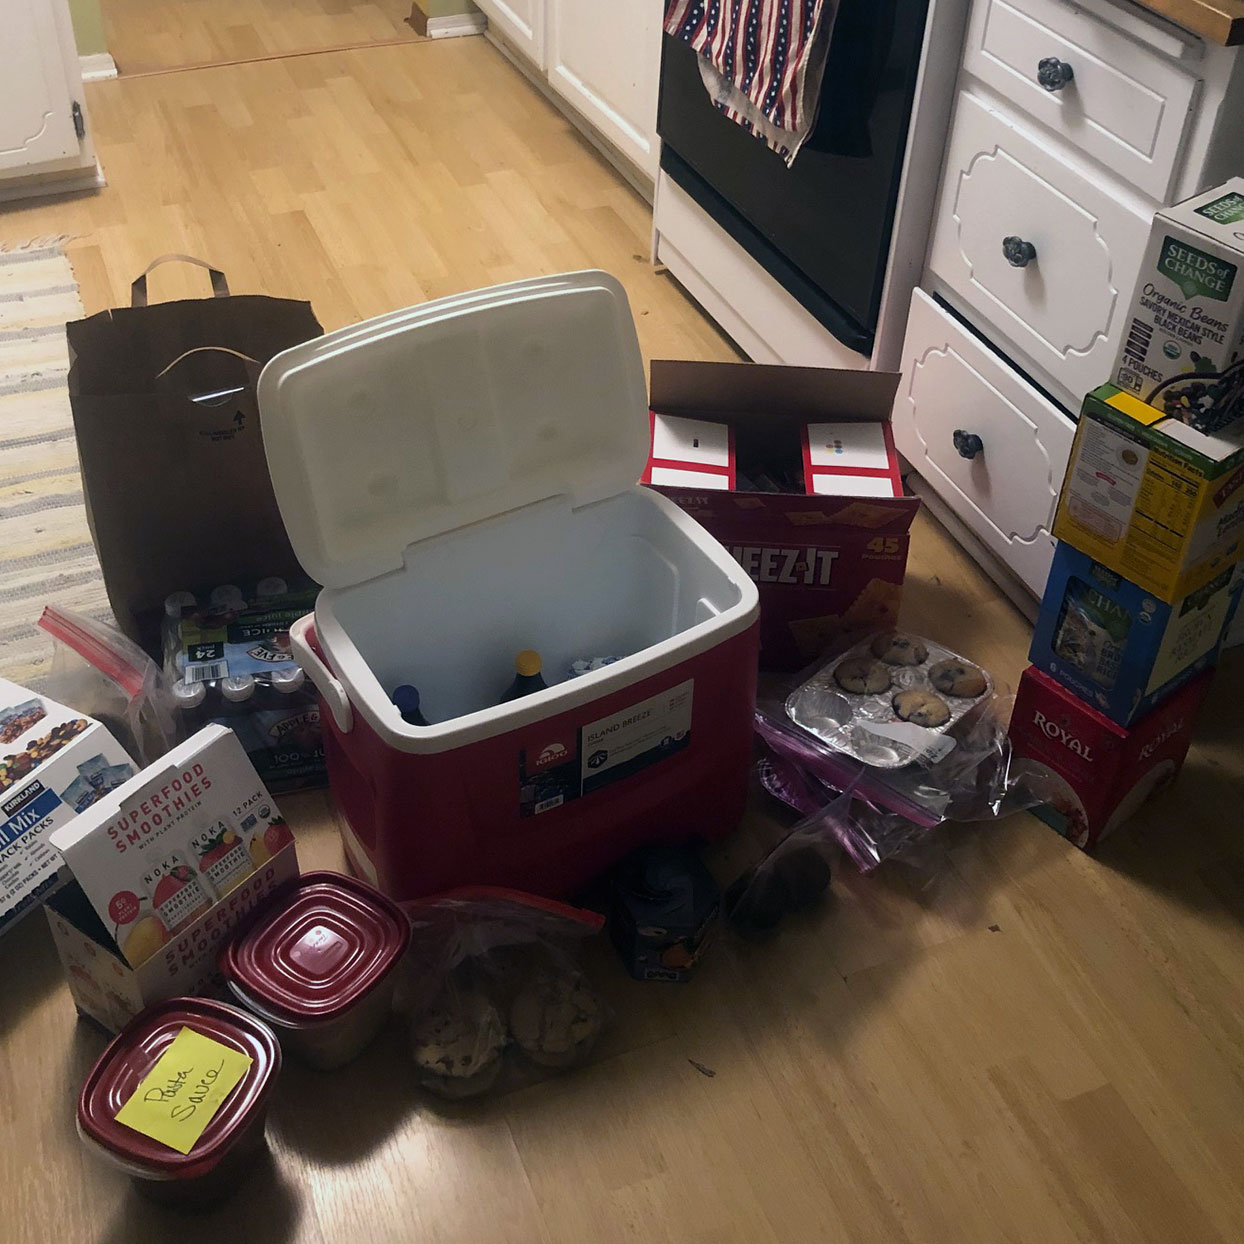 Cooler with food and snacks